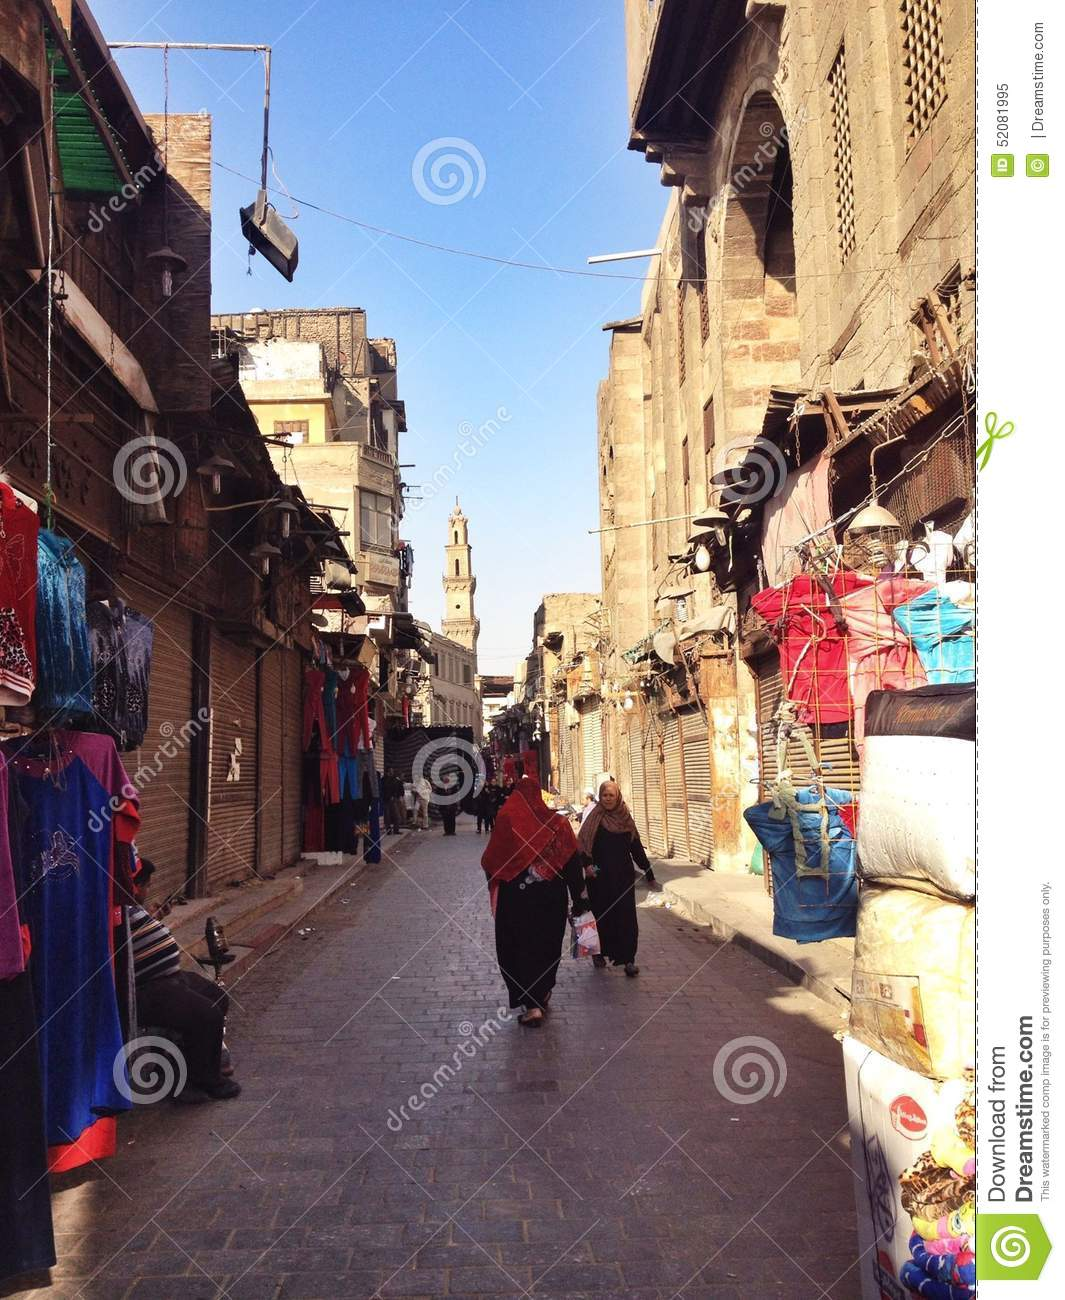 Shops on street in cairo editorial image image 52081995 for Shopping in cairo